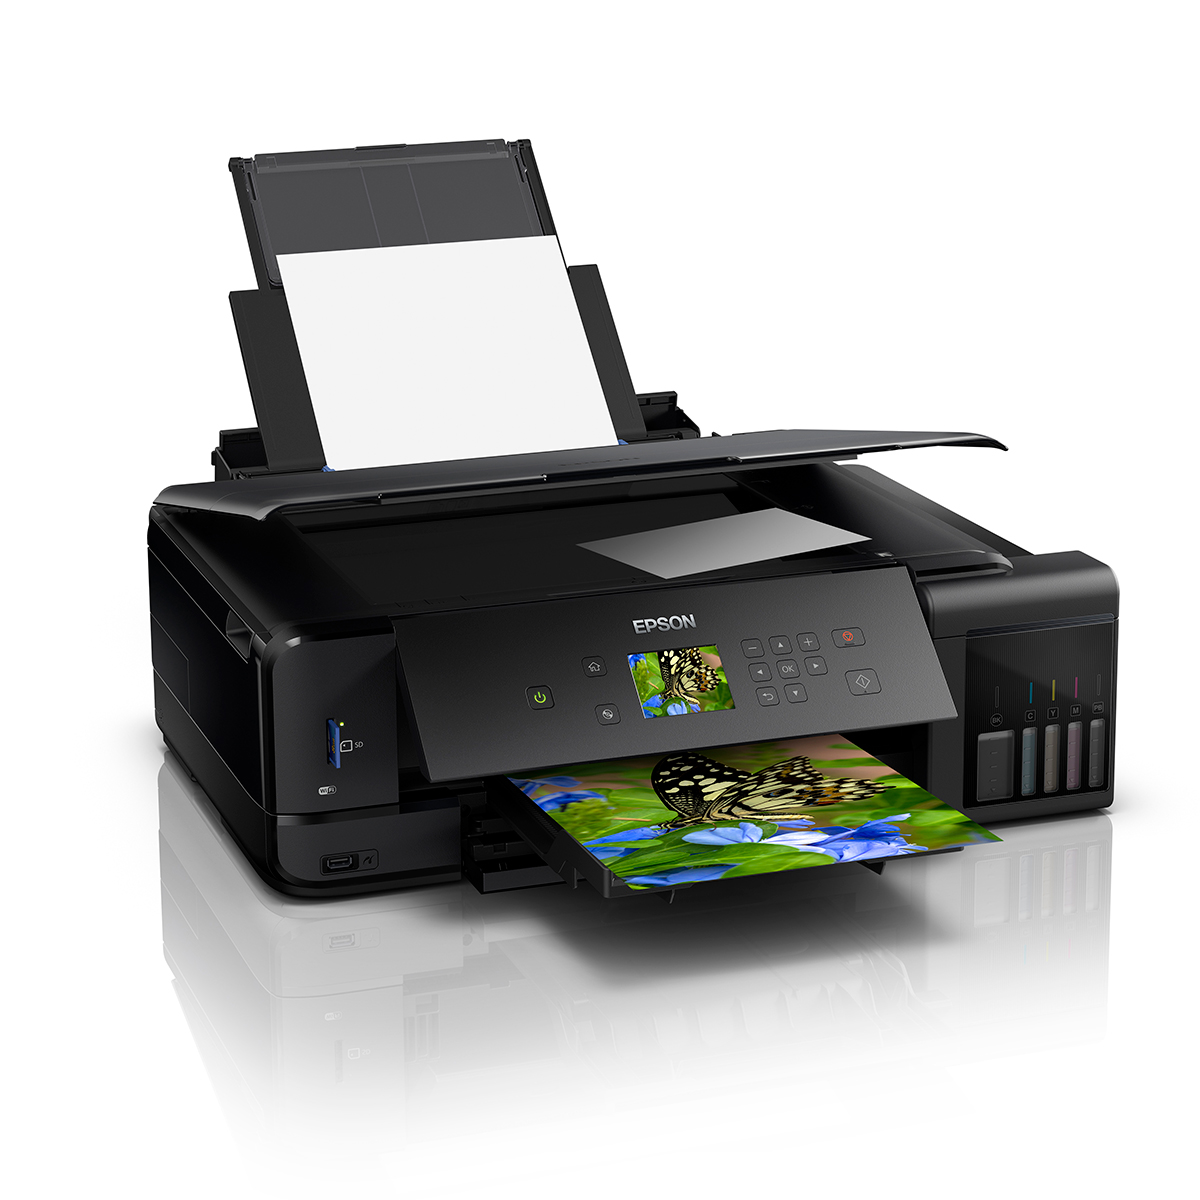 Epson EcoTank ET-7750 A3 Colour Inkjet Multifunction